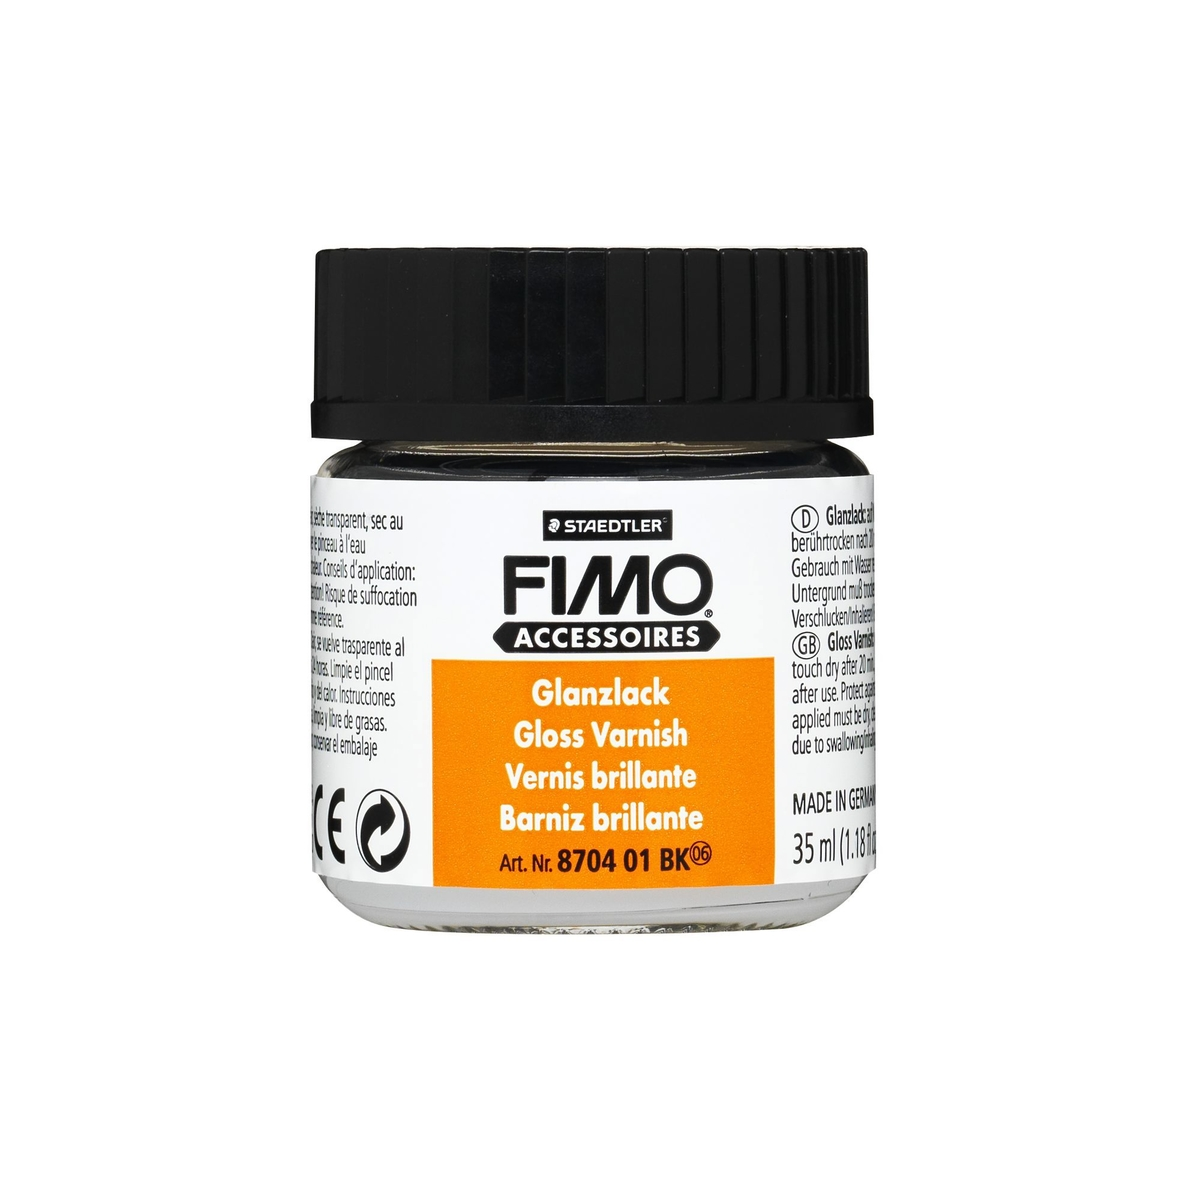 Fimo gloss varnish